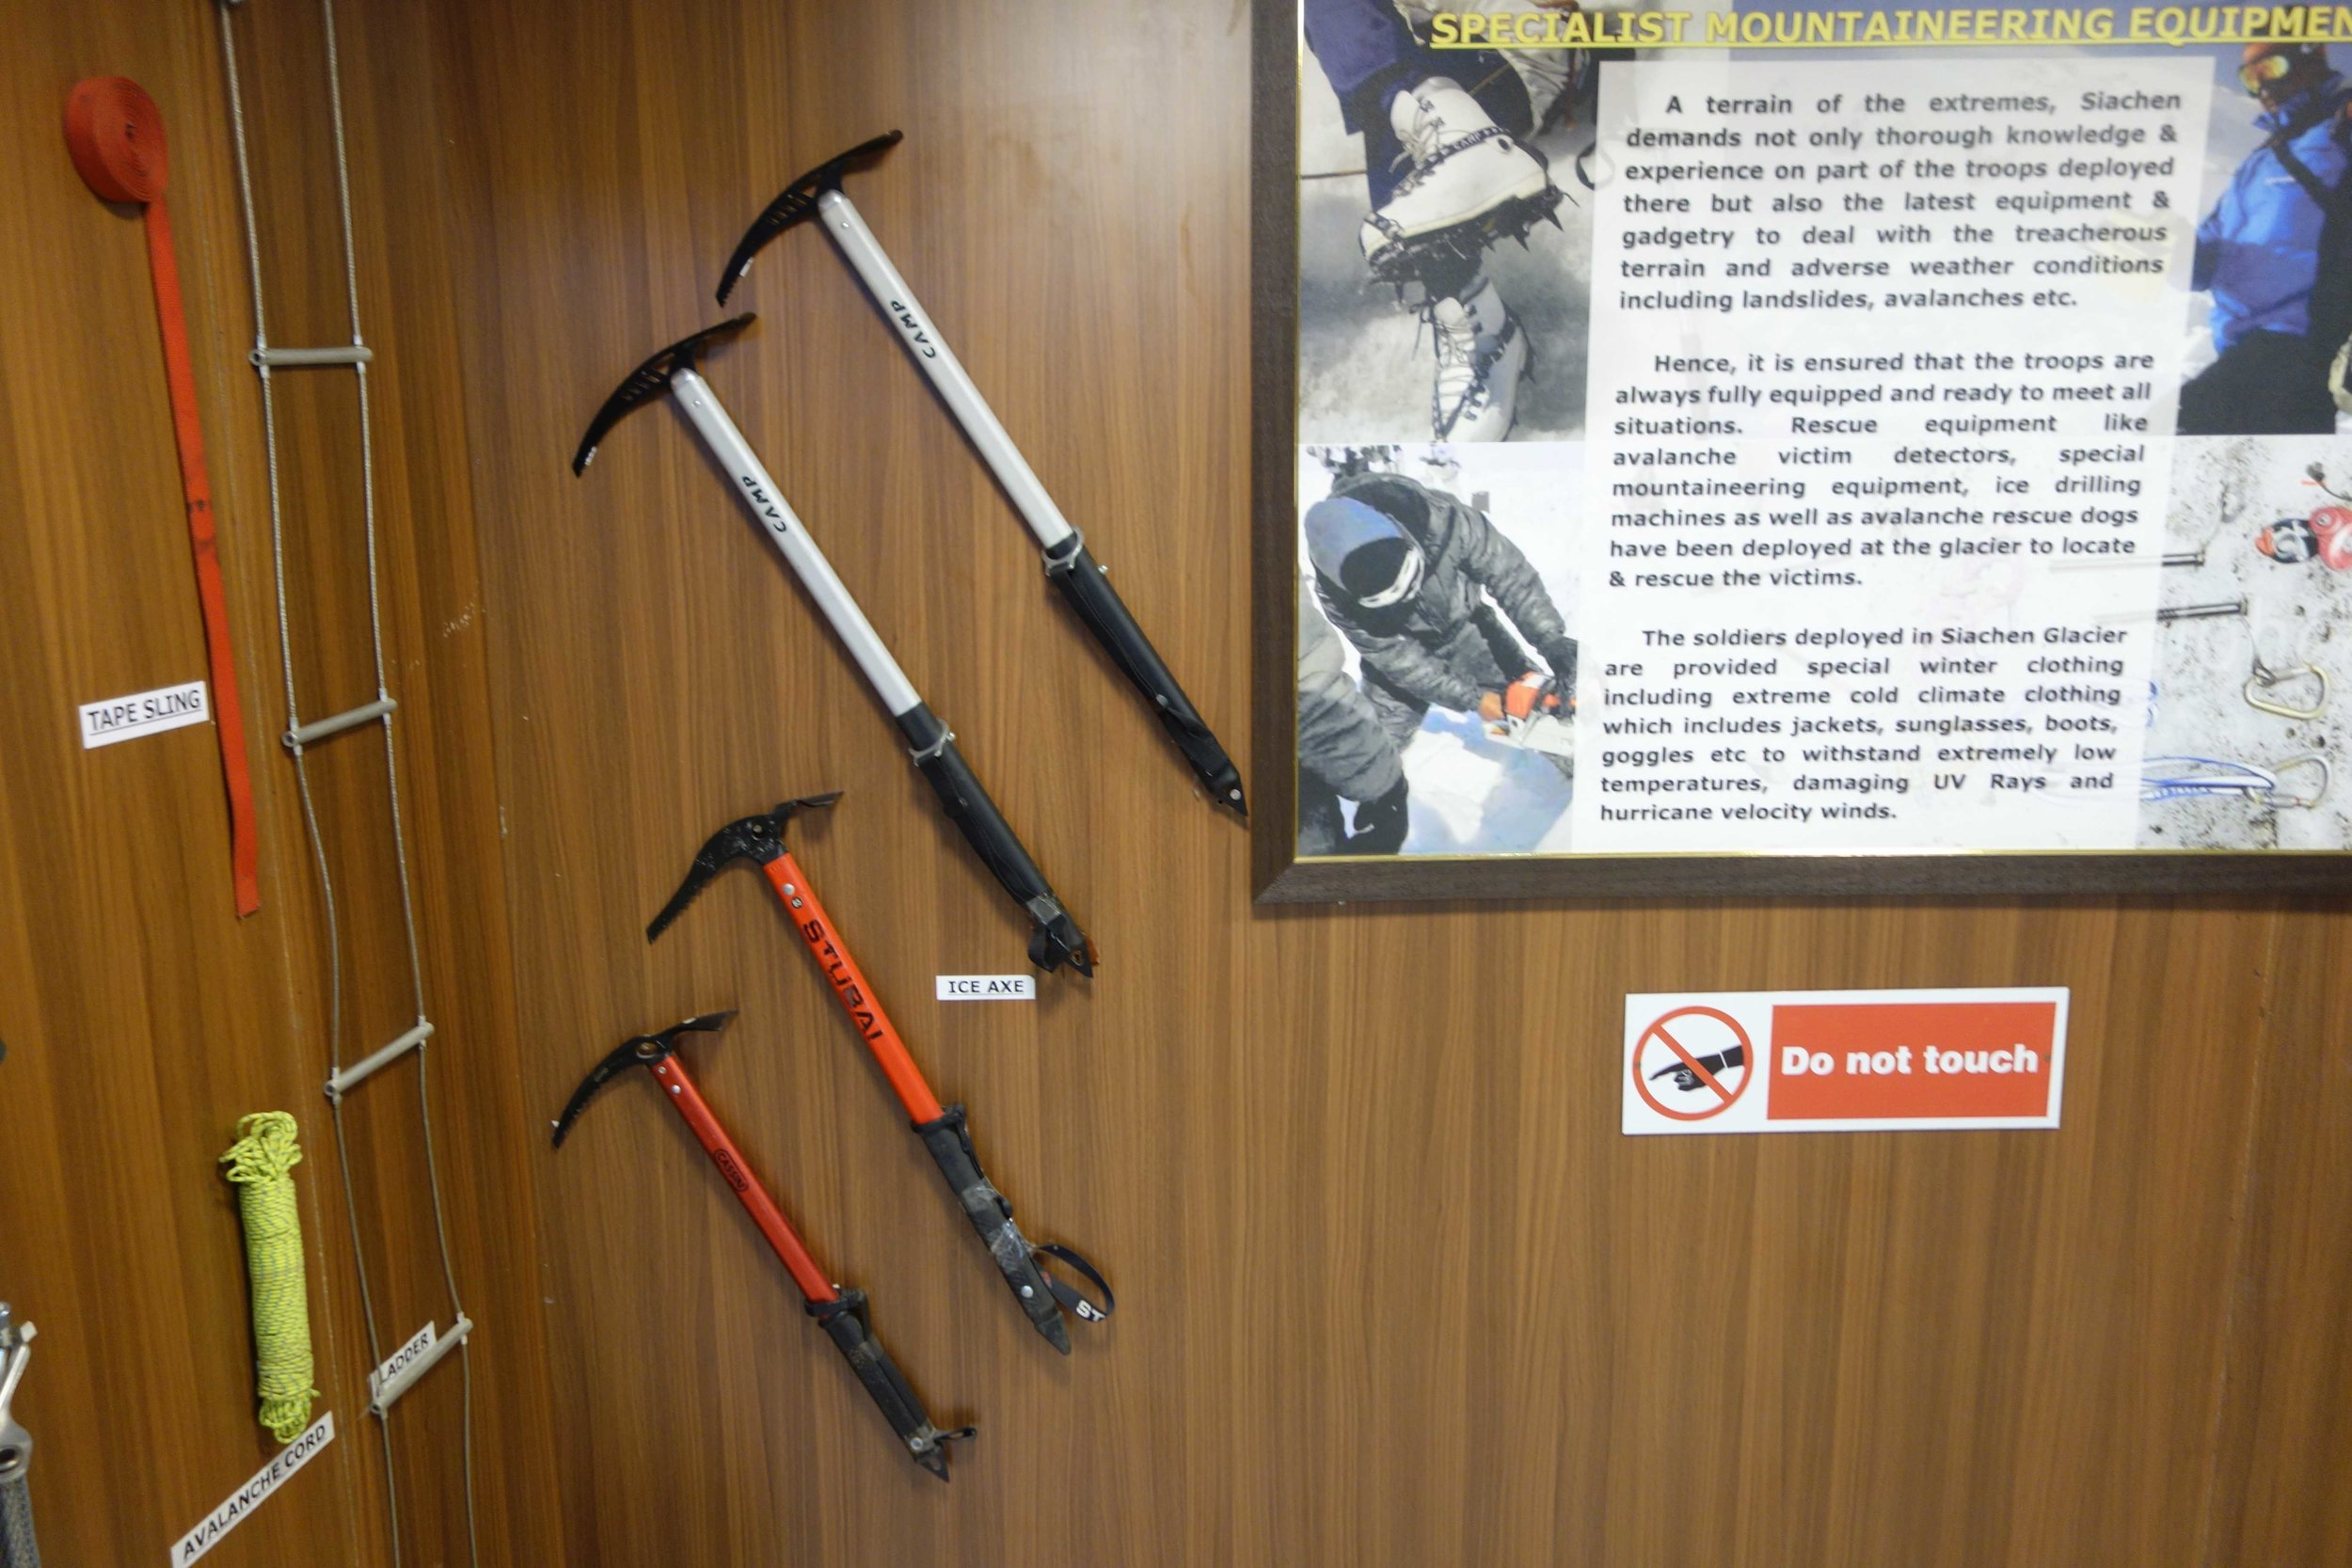 Different Mountaineering Gear I